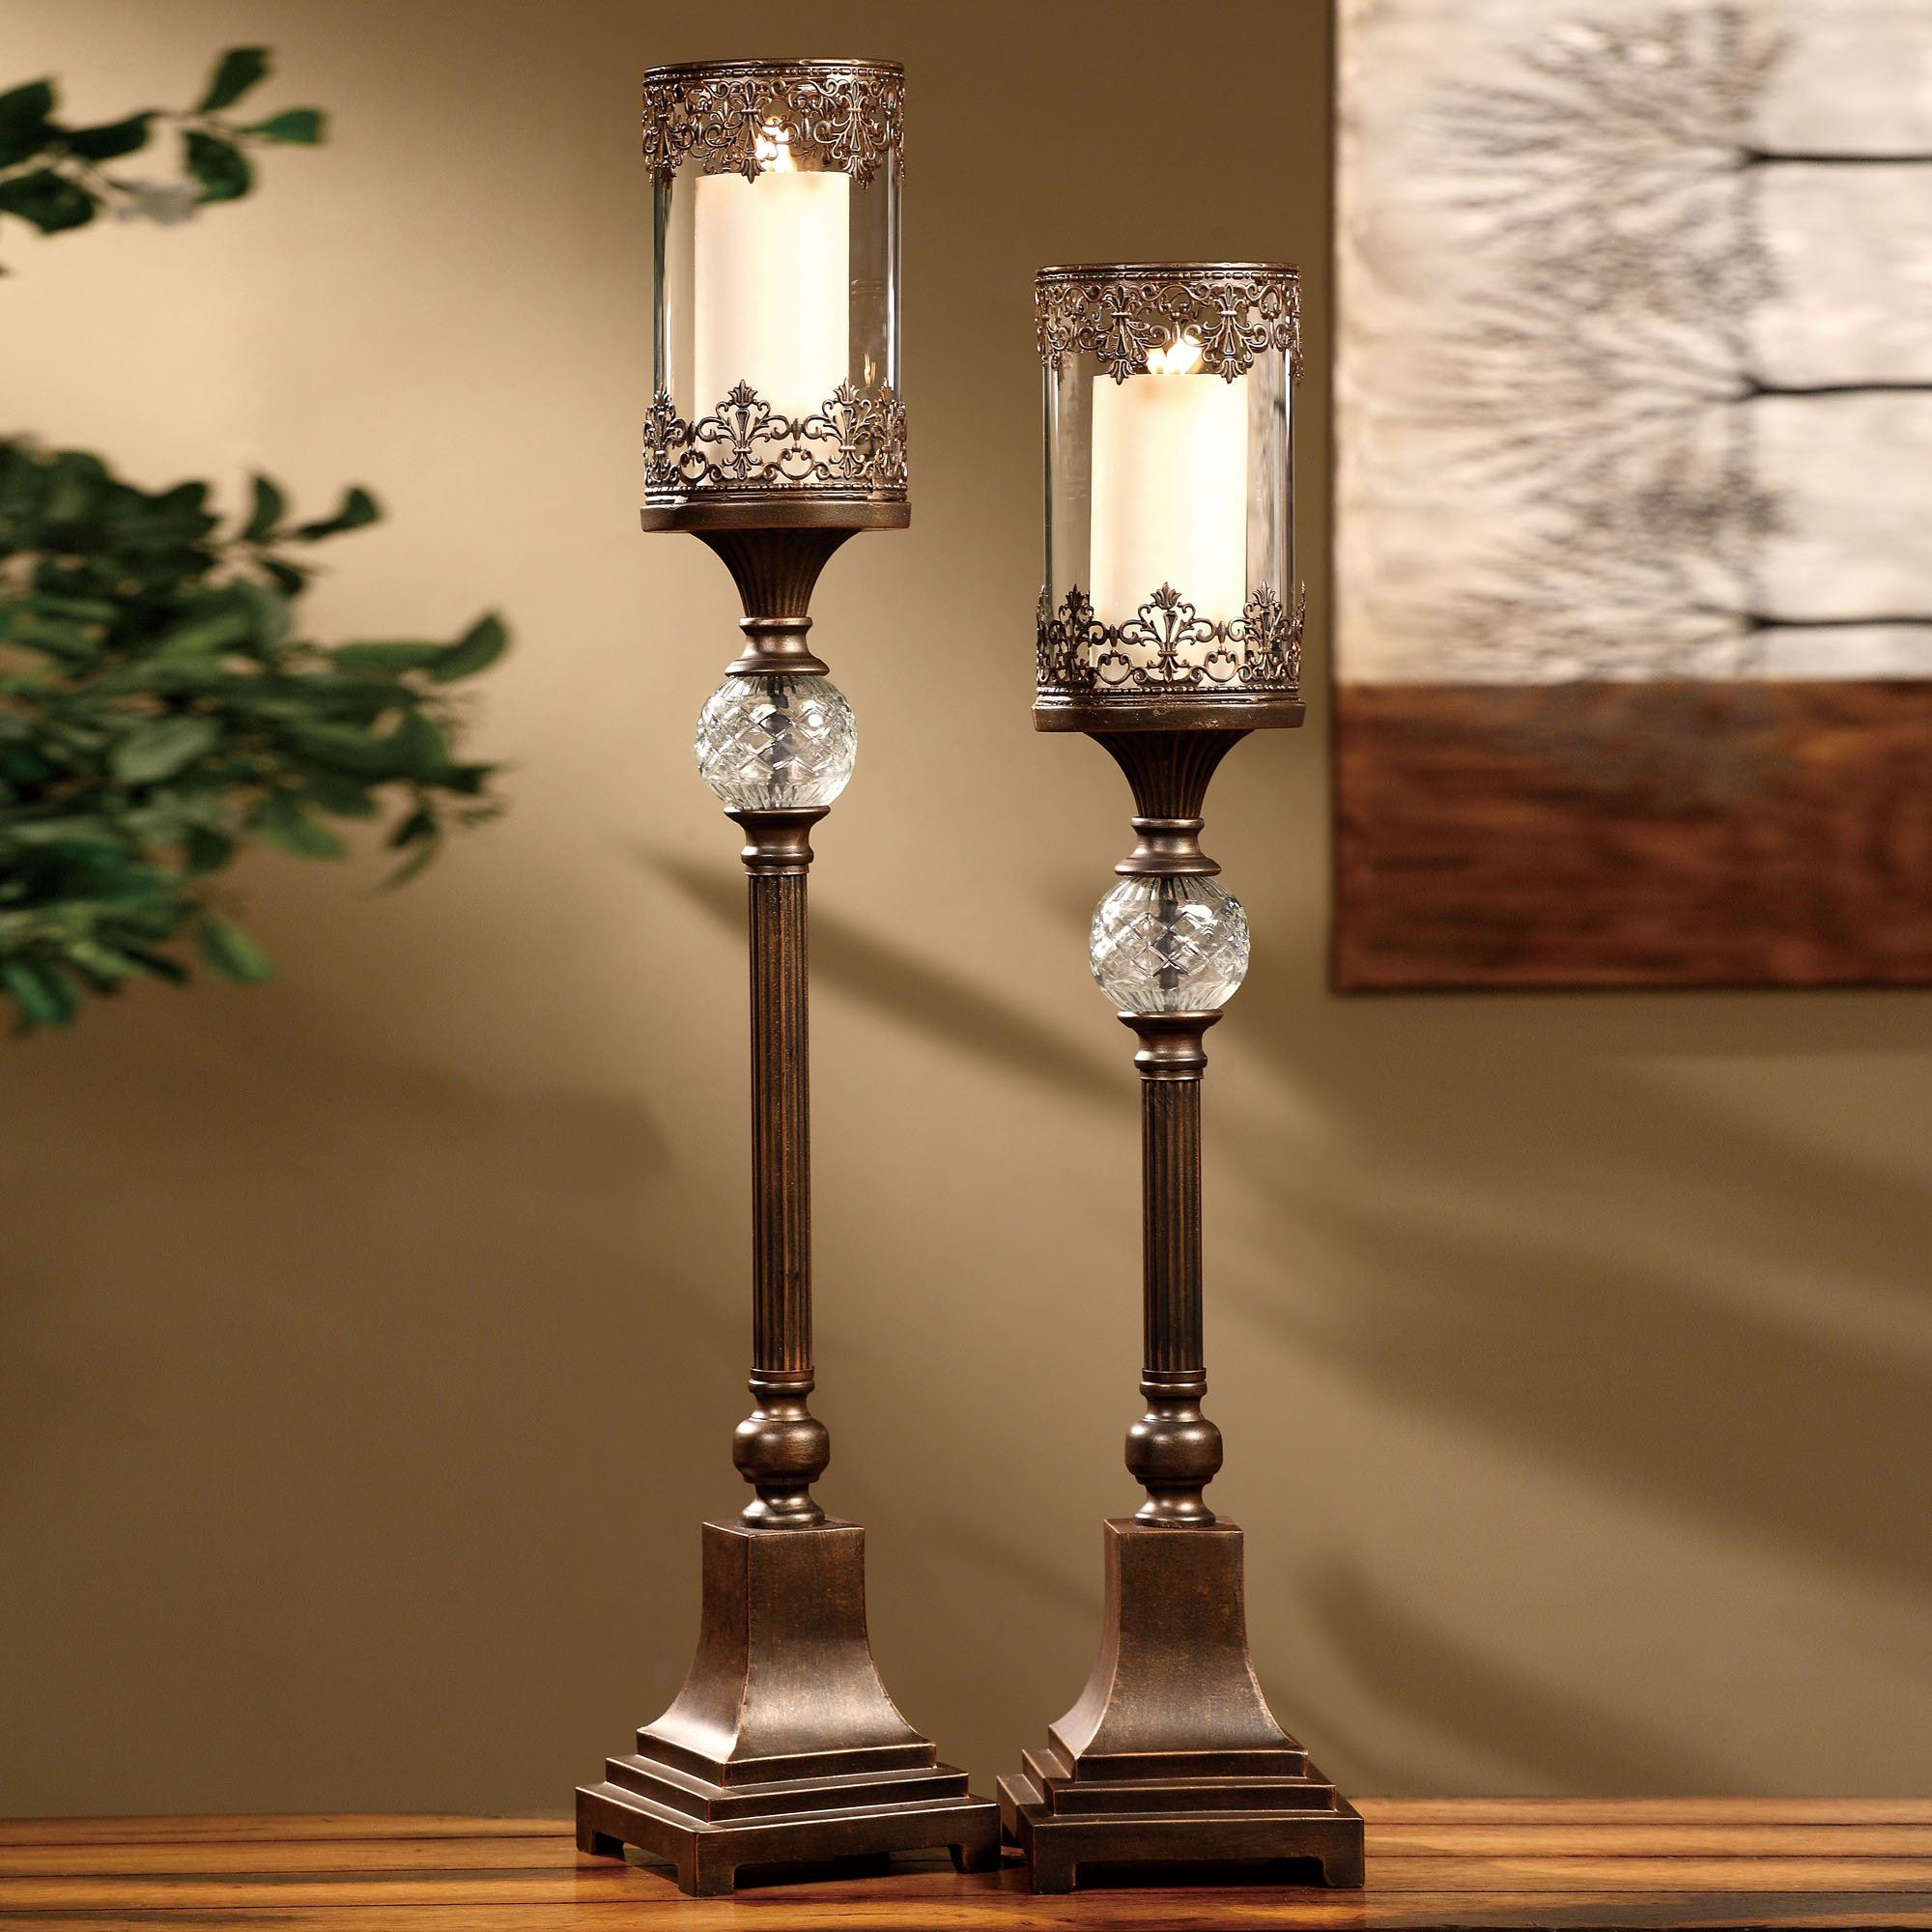 Floor Standing Hurricane Candle Holders Cheaper Than Retail Price Buy Clothing Accessories And Lifestyle Products For Women Men